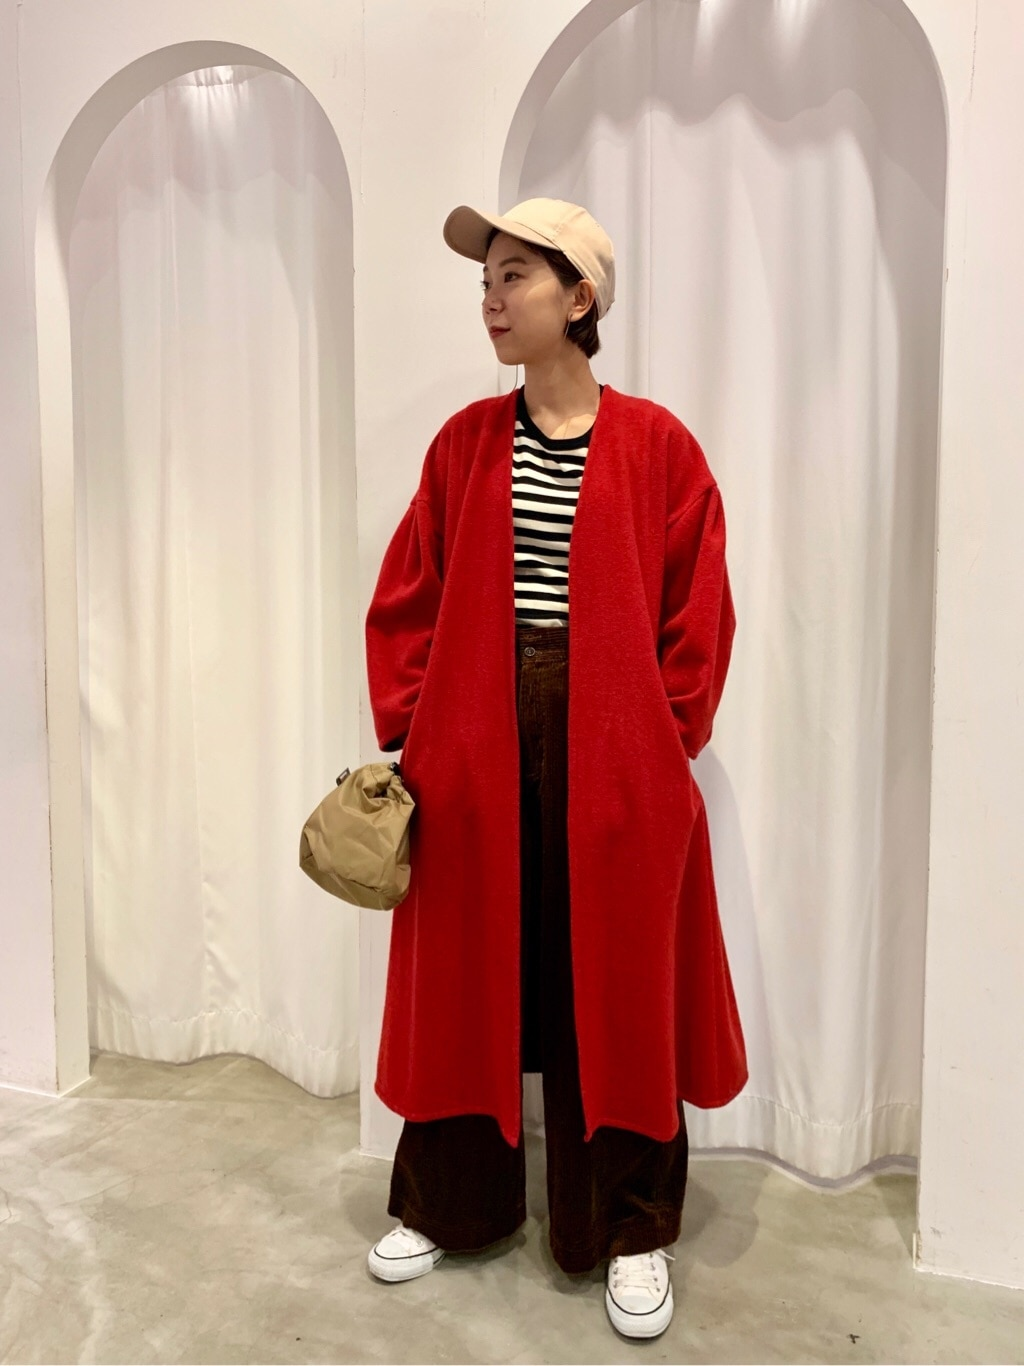 Dot and Stripes CHILD WOMAN 新宿ミロード 身長:161cm 2019.10.31